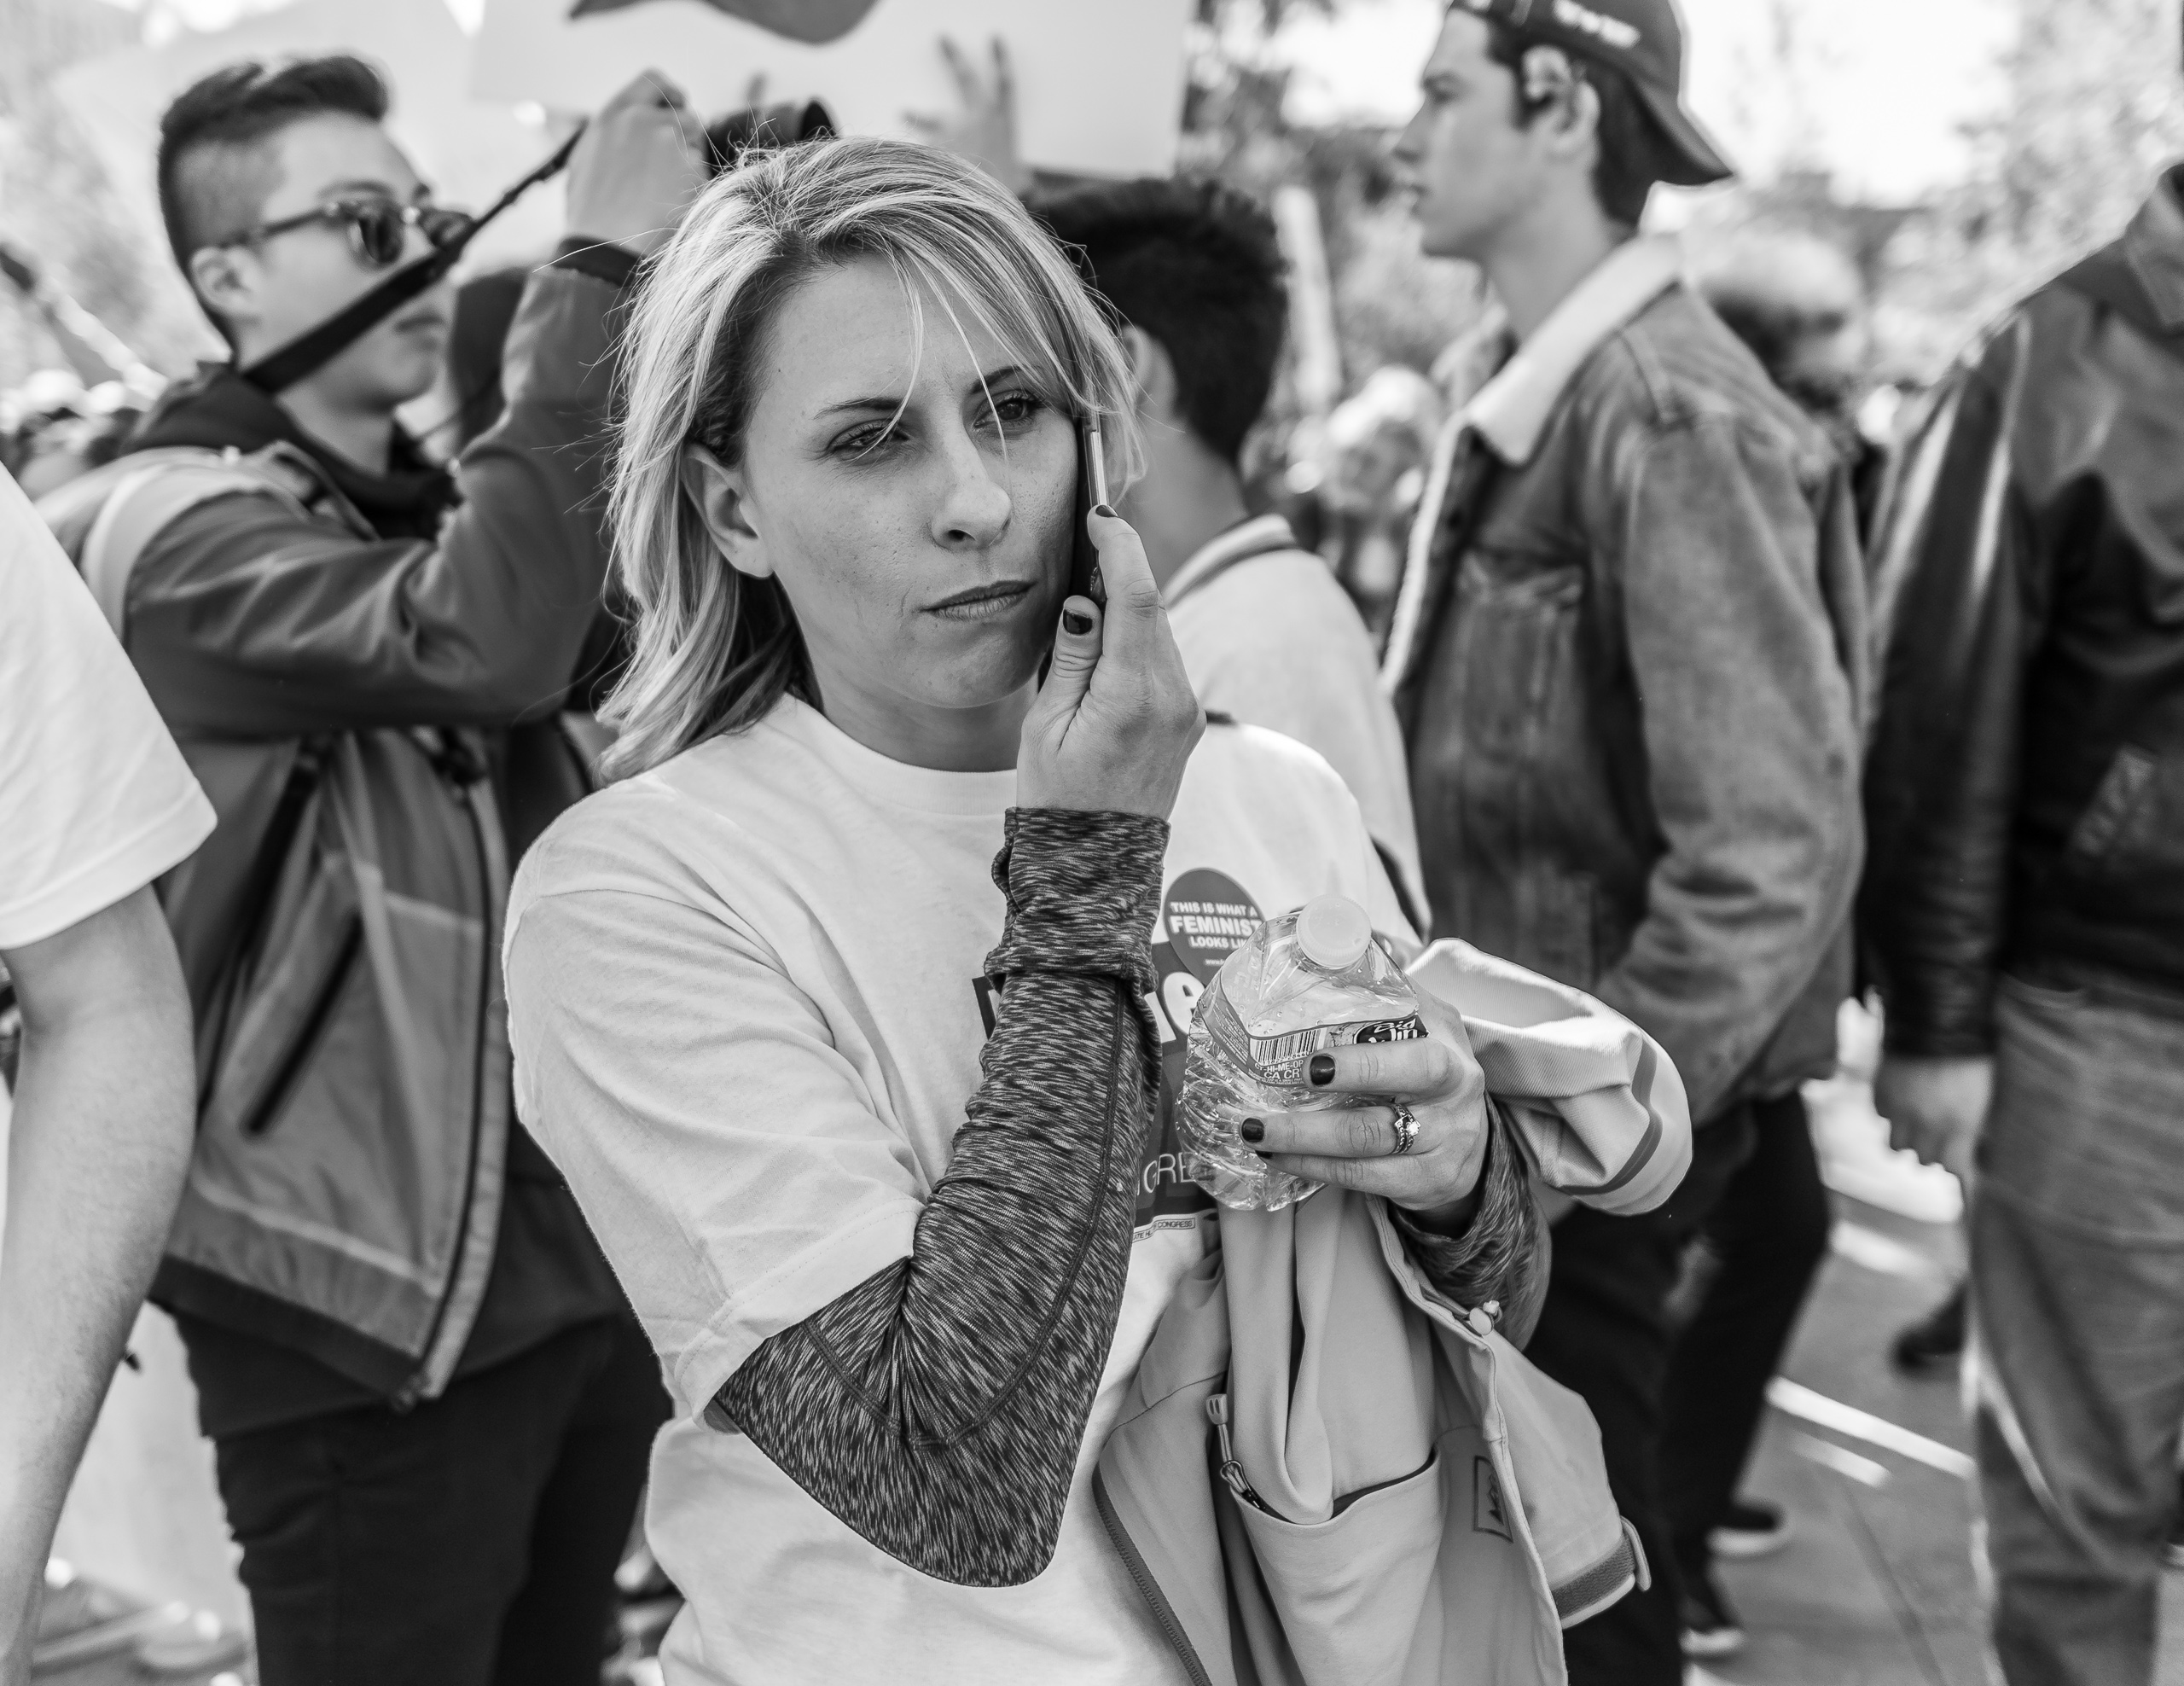 Katie Hill on a cell phone at the Women's March Los Angeles 2018